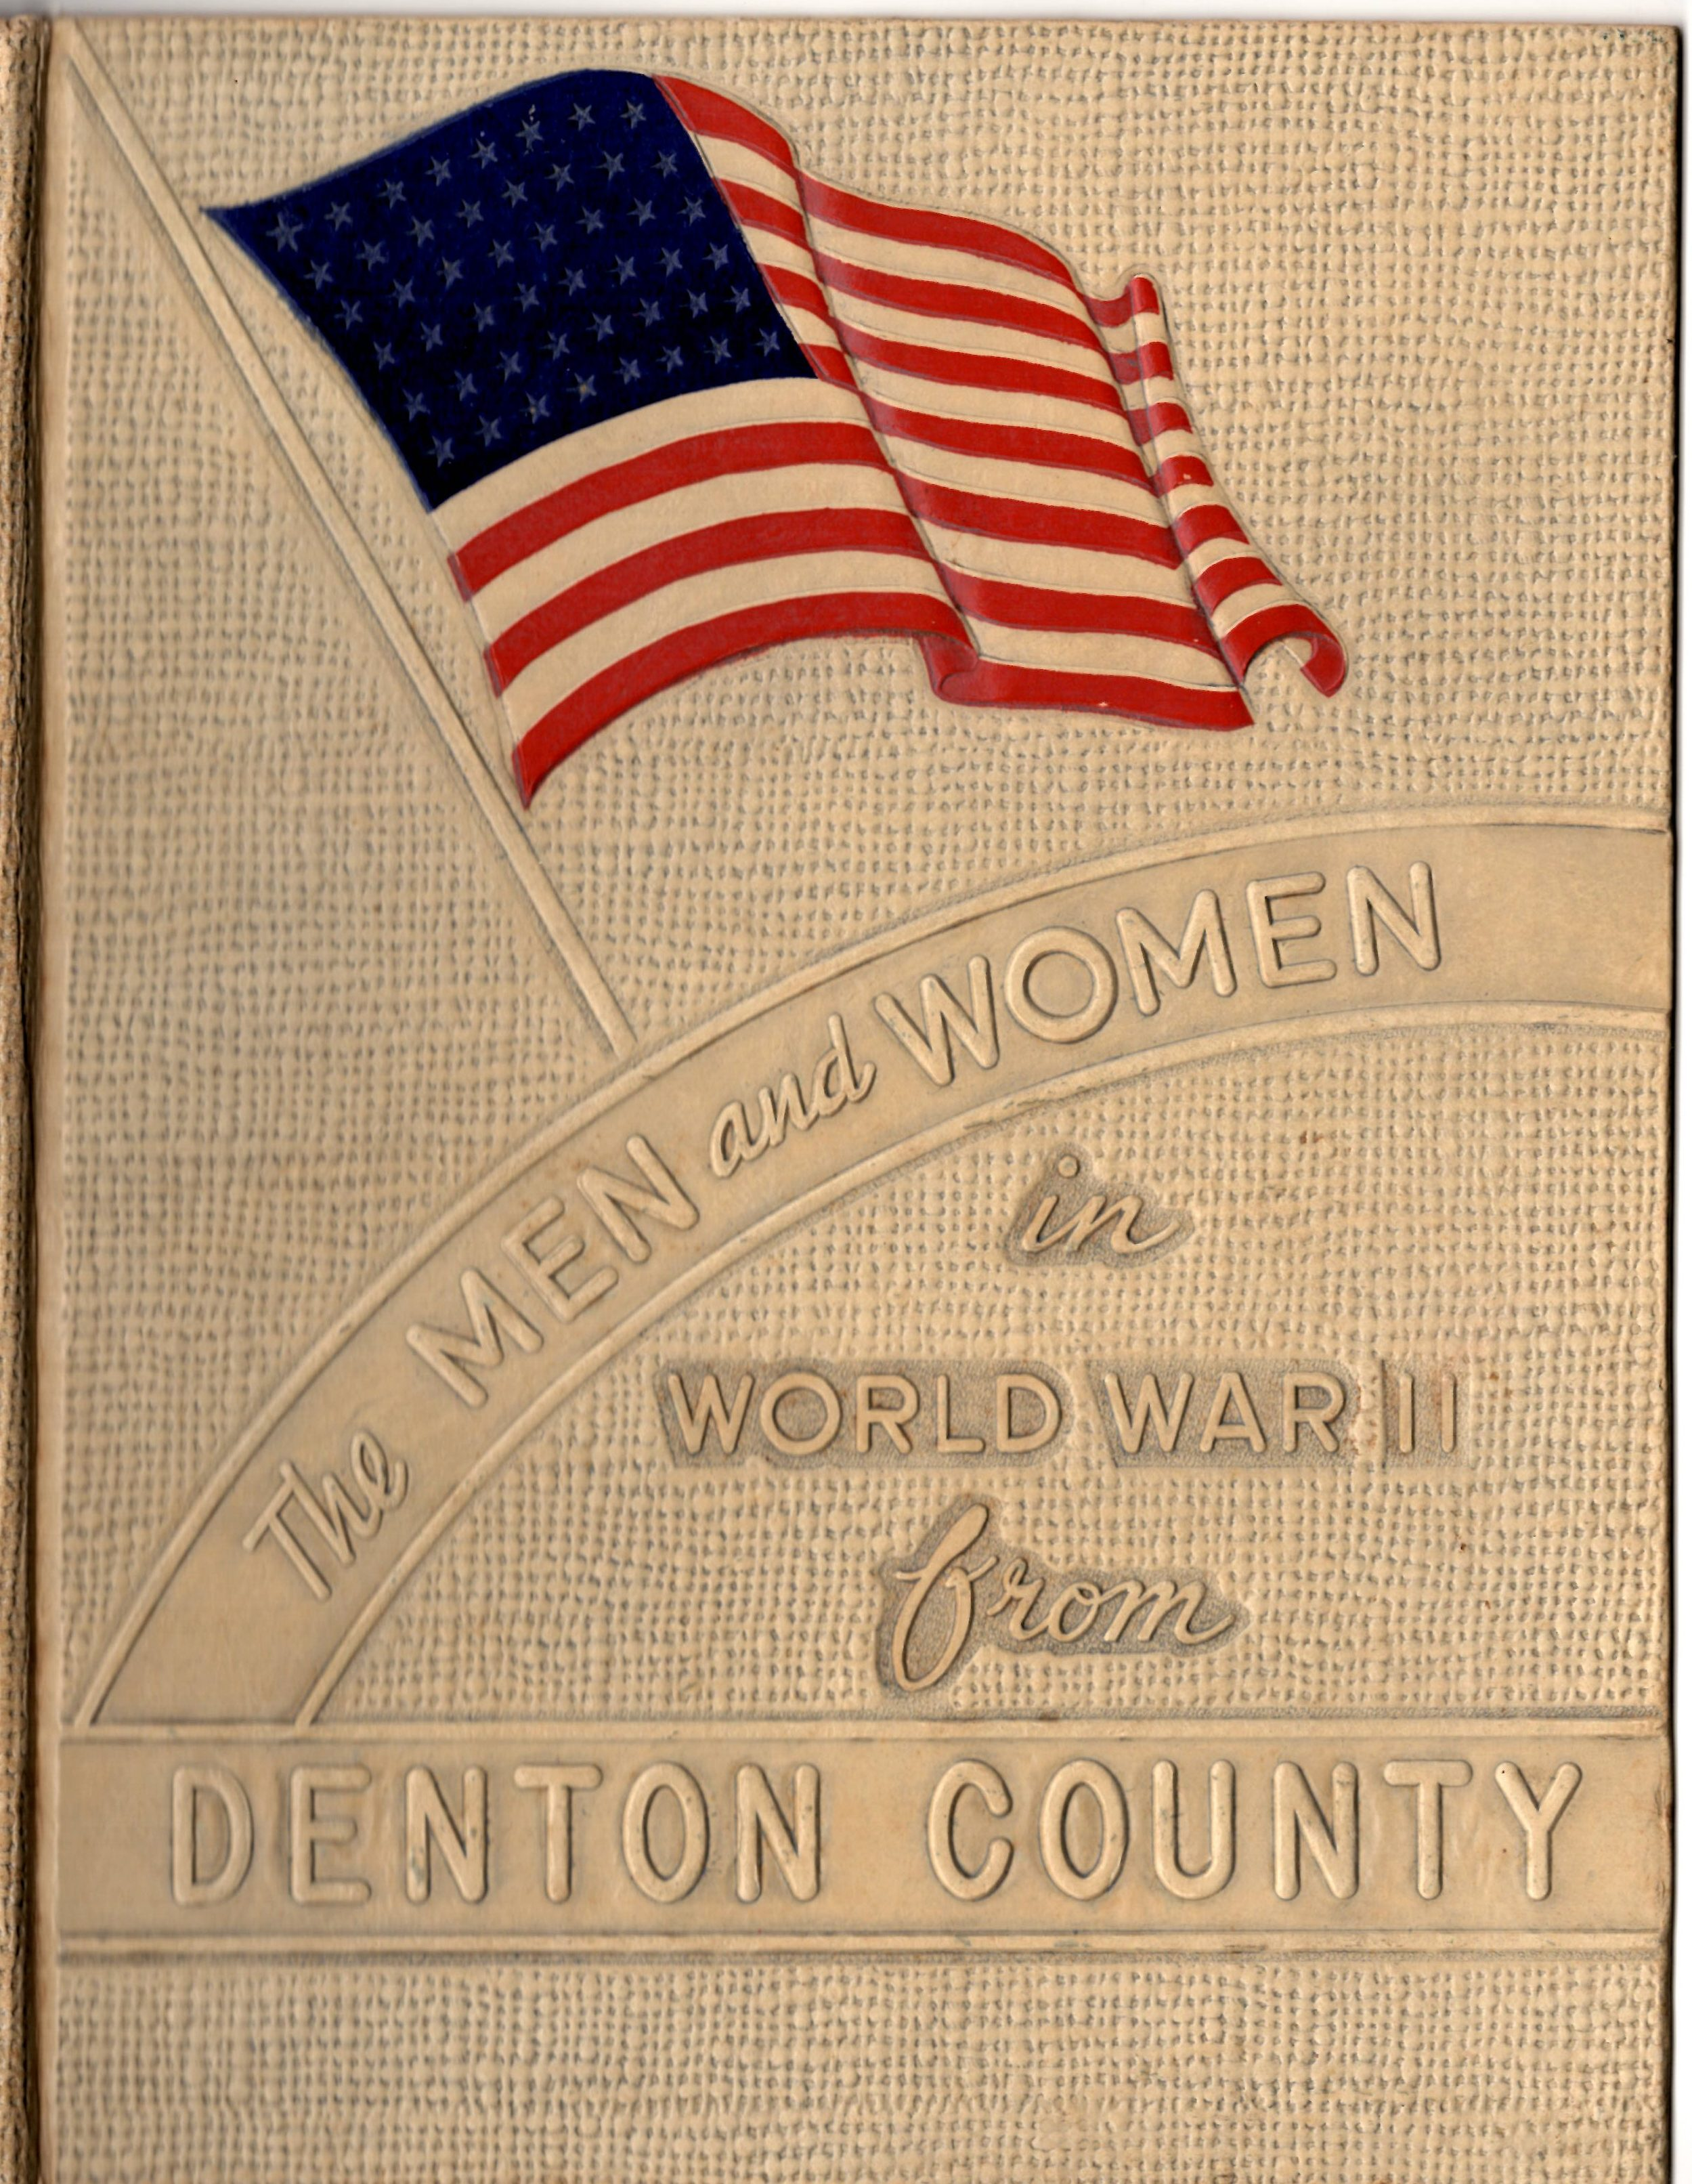 Men and women in the Armed Forces from Denton County Texas